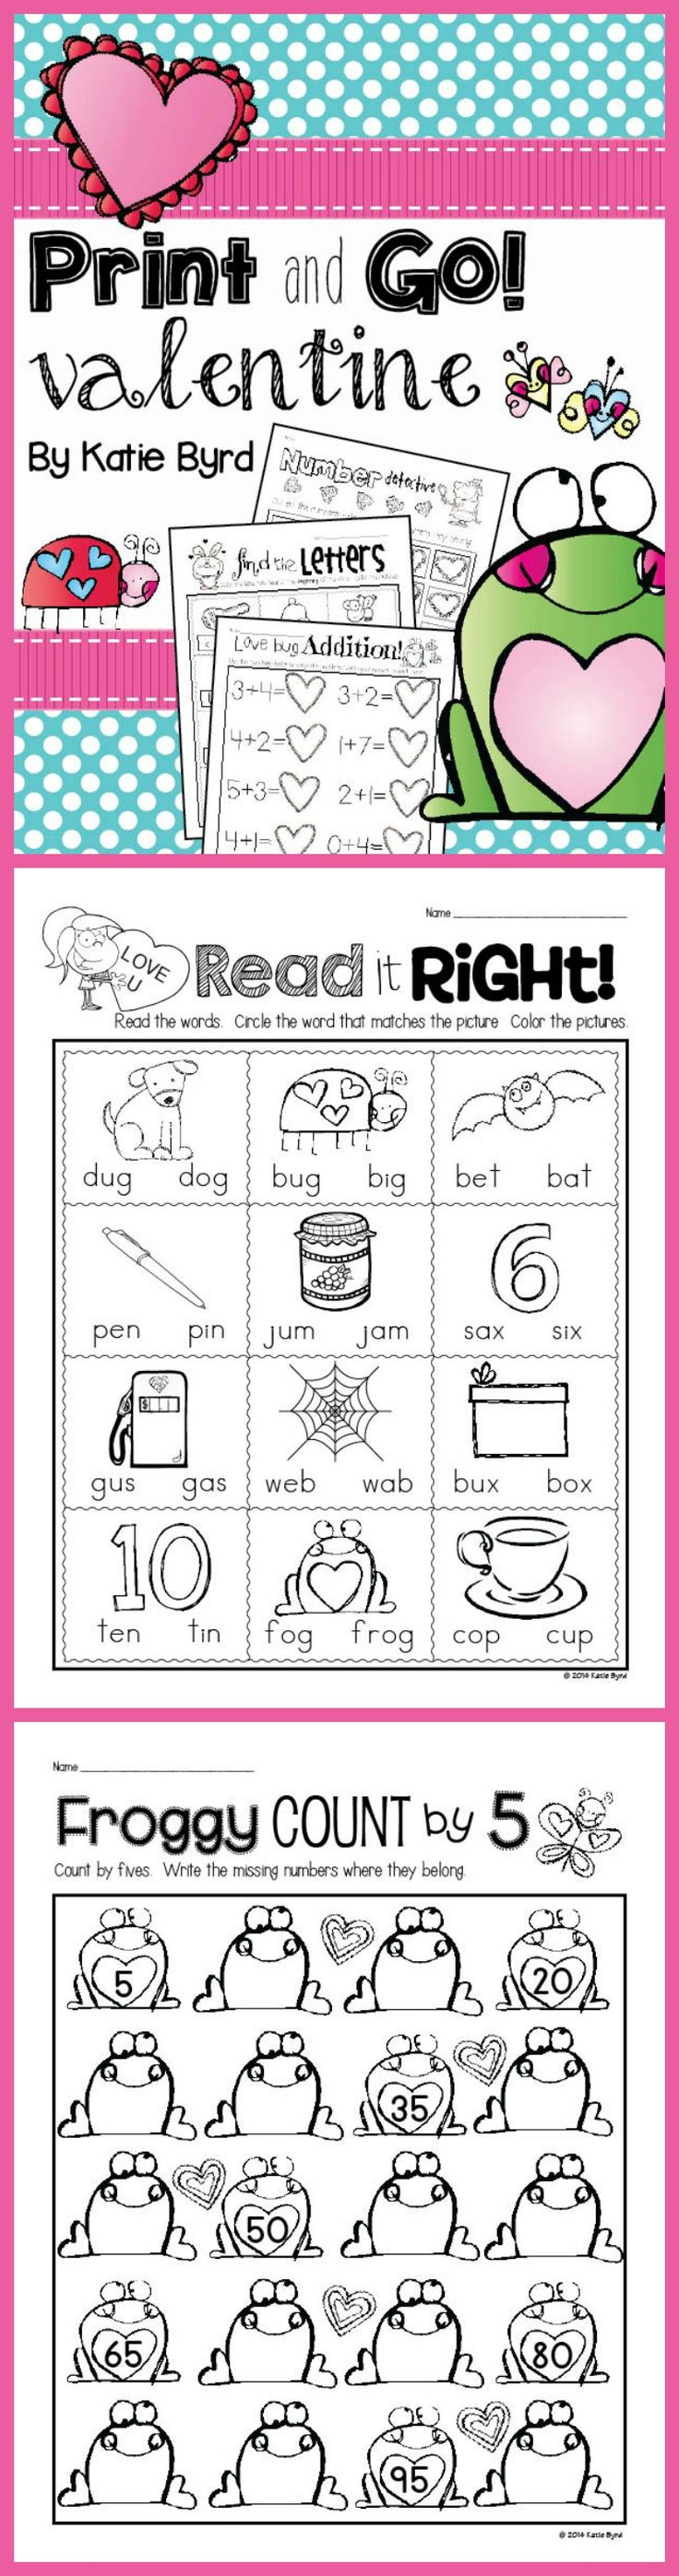 101 best Jolly Phonics images on Pinterest | School, Speech language ...